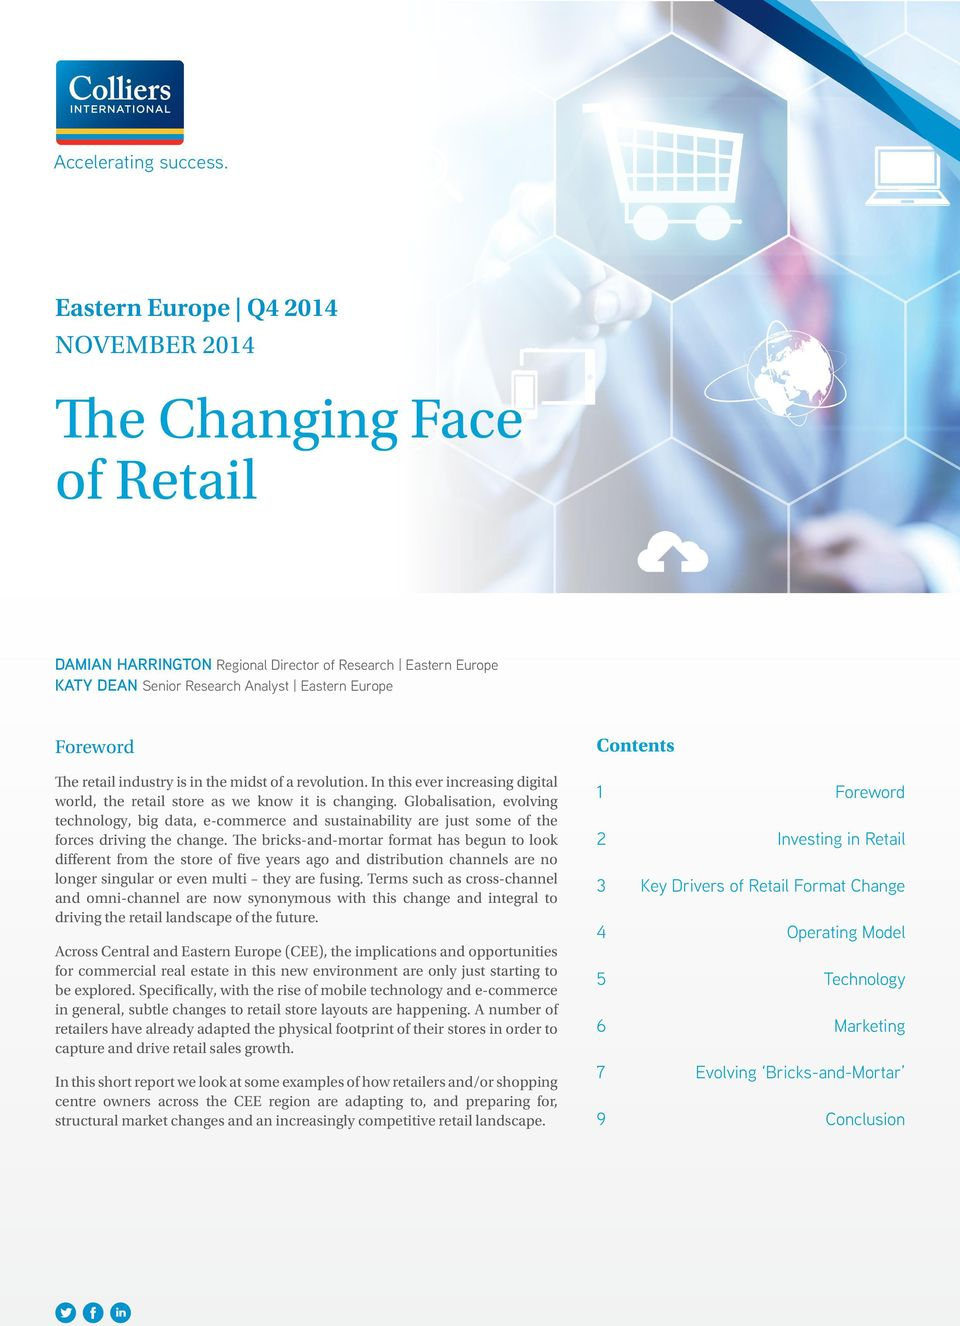 industry is in the midst of a revolution. In this ever increasing digital world, the retail store as we know it is changing.